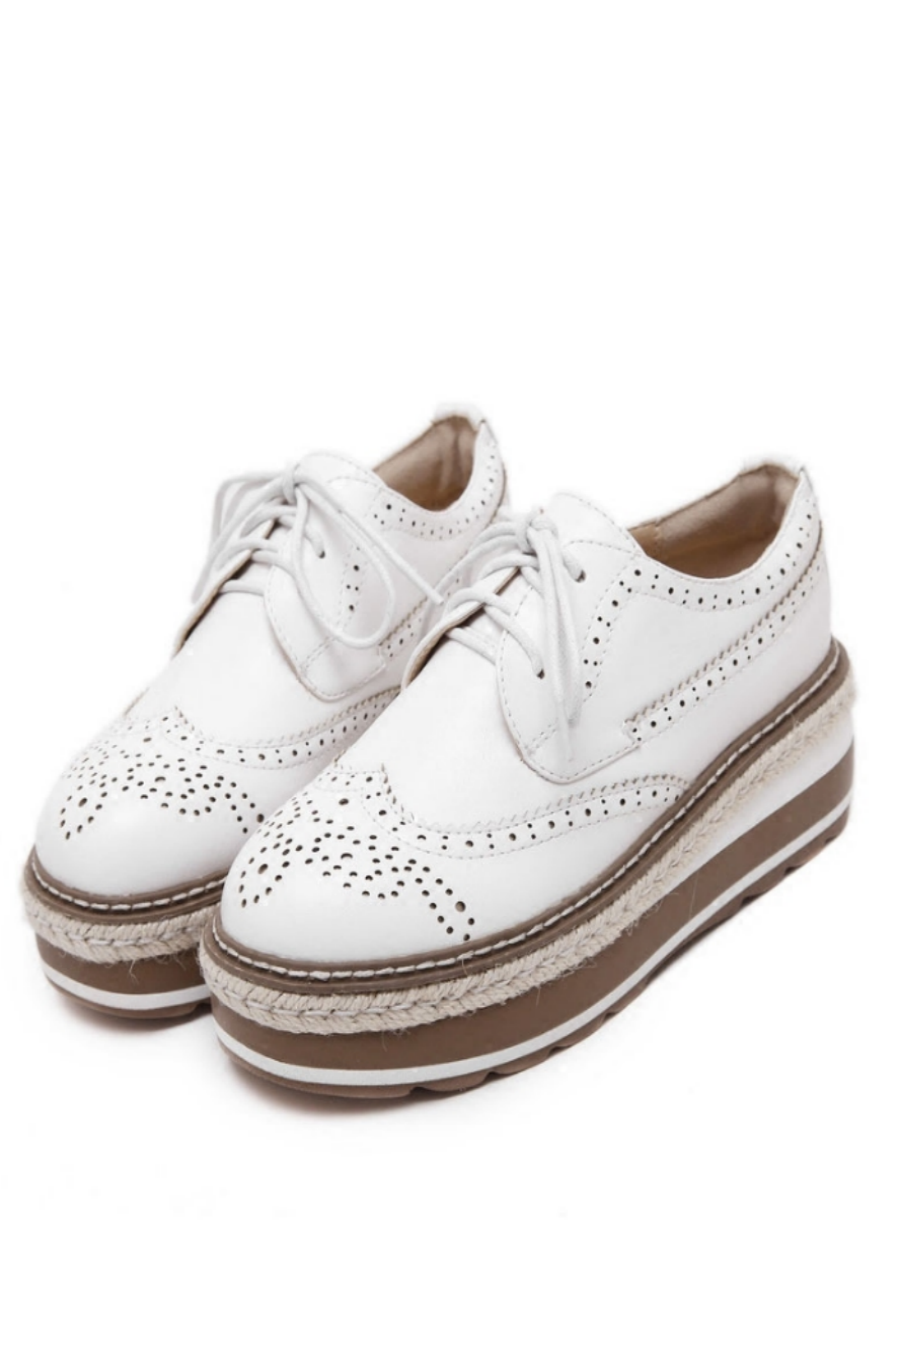 White Oxford Platform Shoes